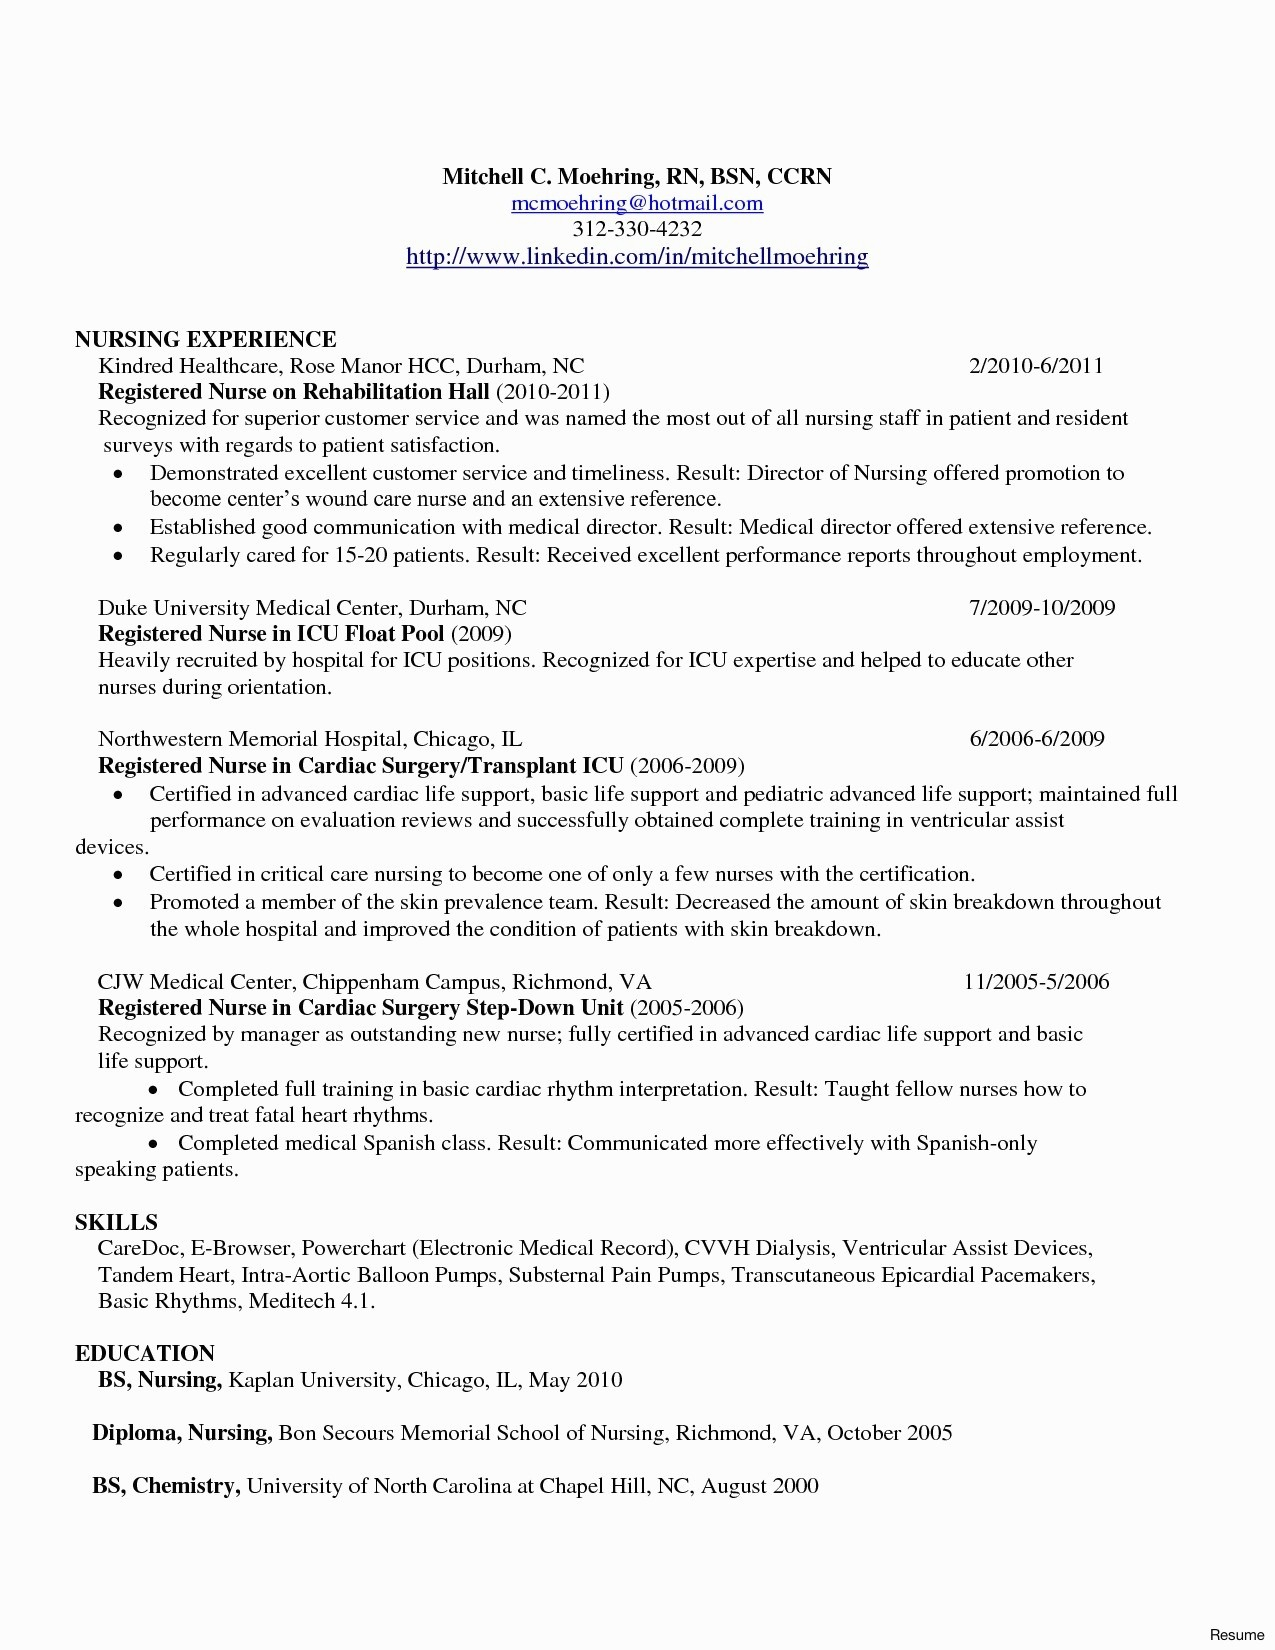 Nursing School Resume - Resume Descriptions for Registered Nurses Resume Resume Examples